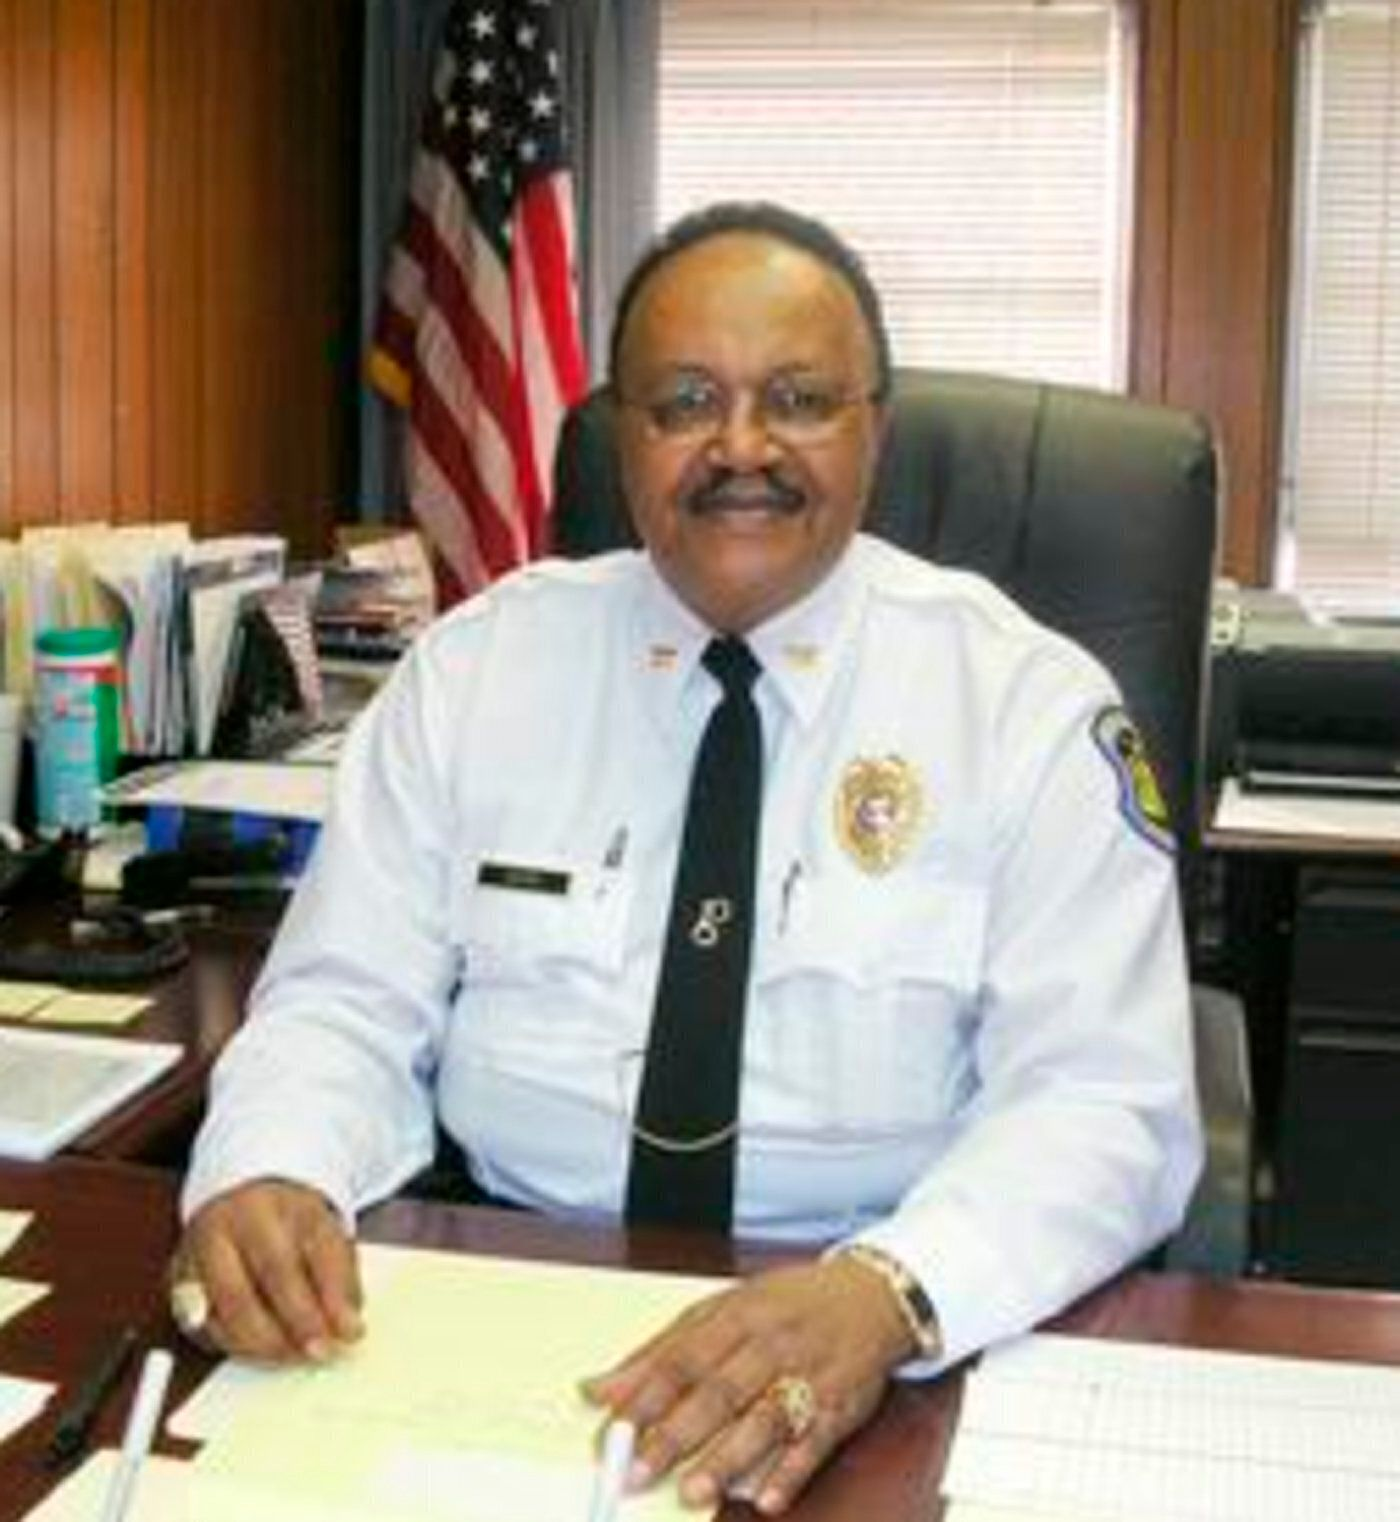 Retired St. Louis Police Captain Killed Amid Unrest